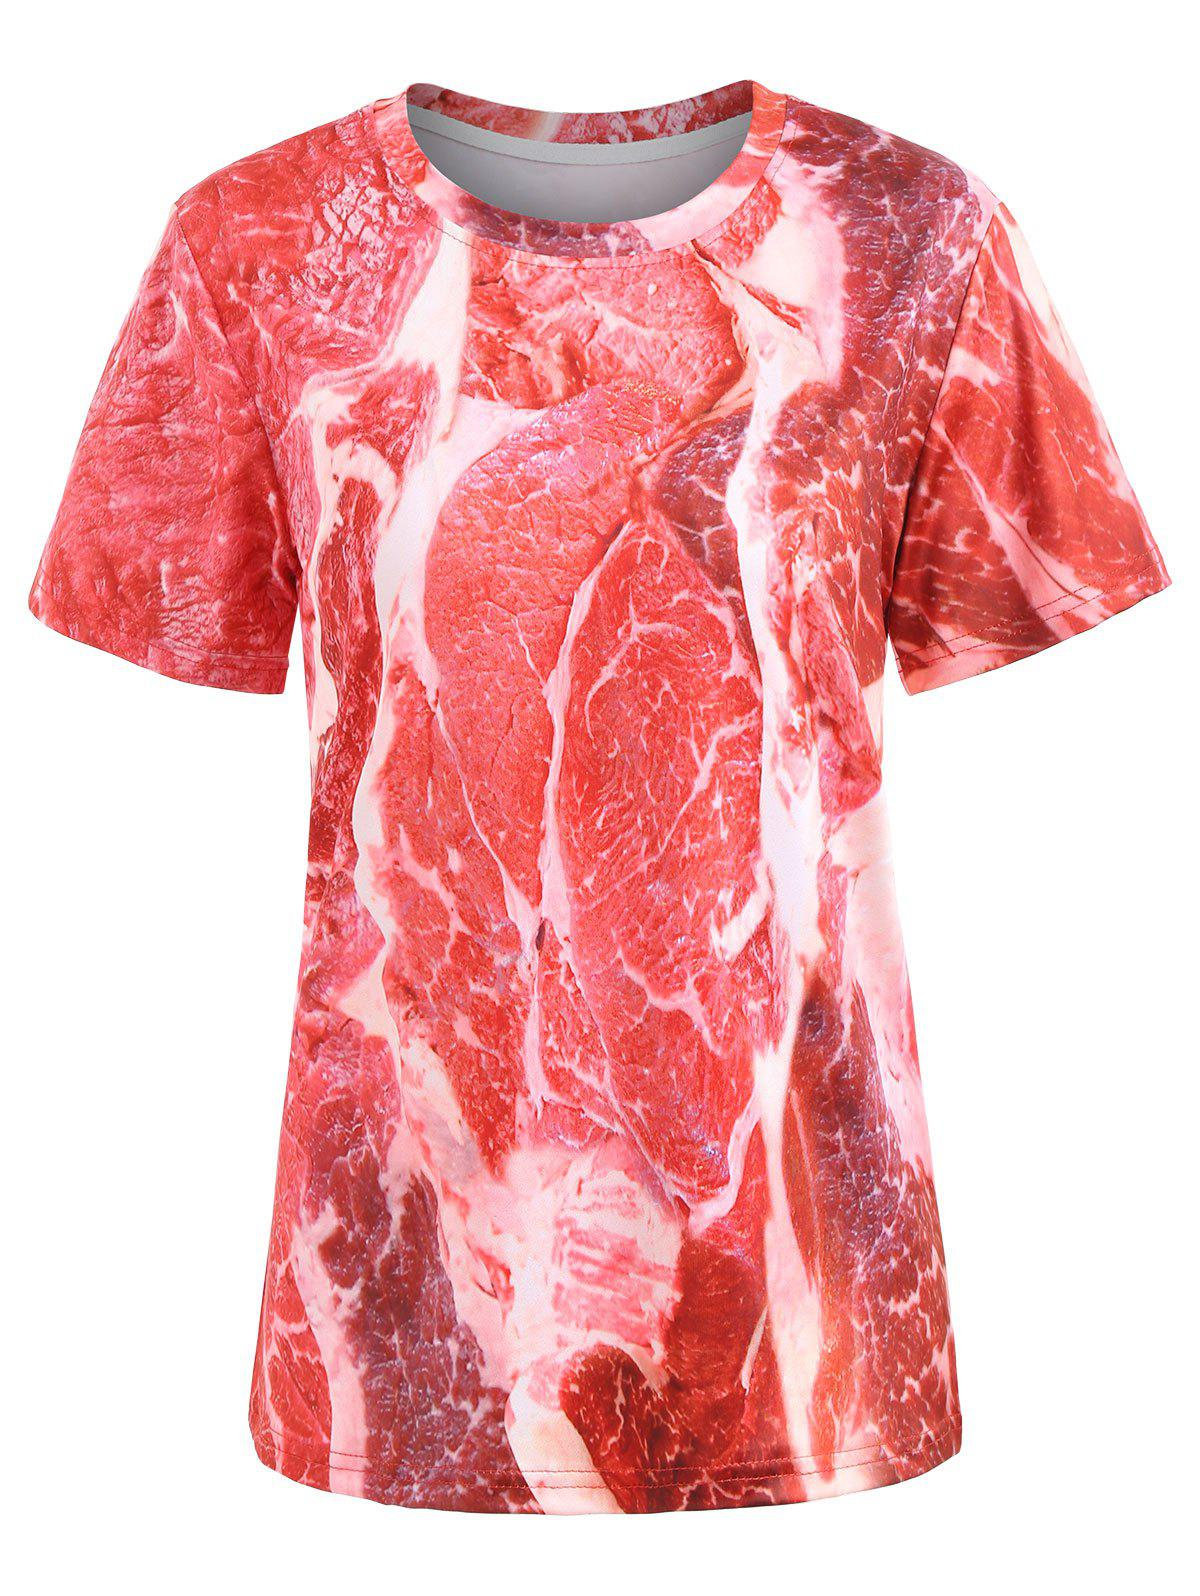 Casual Raw Meat Tee - RED 2XL